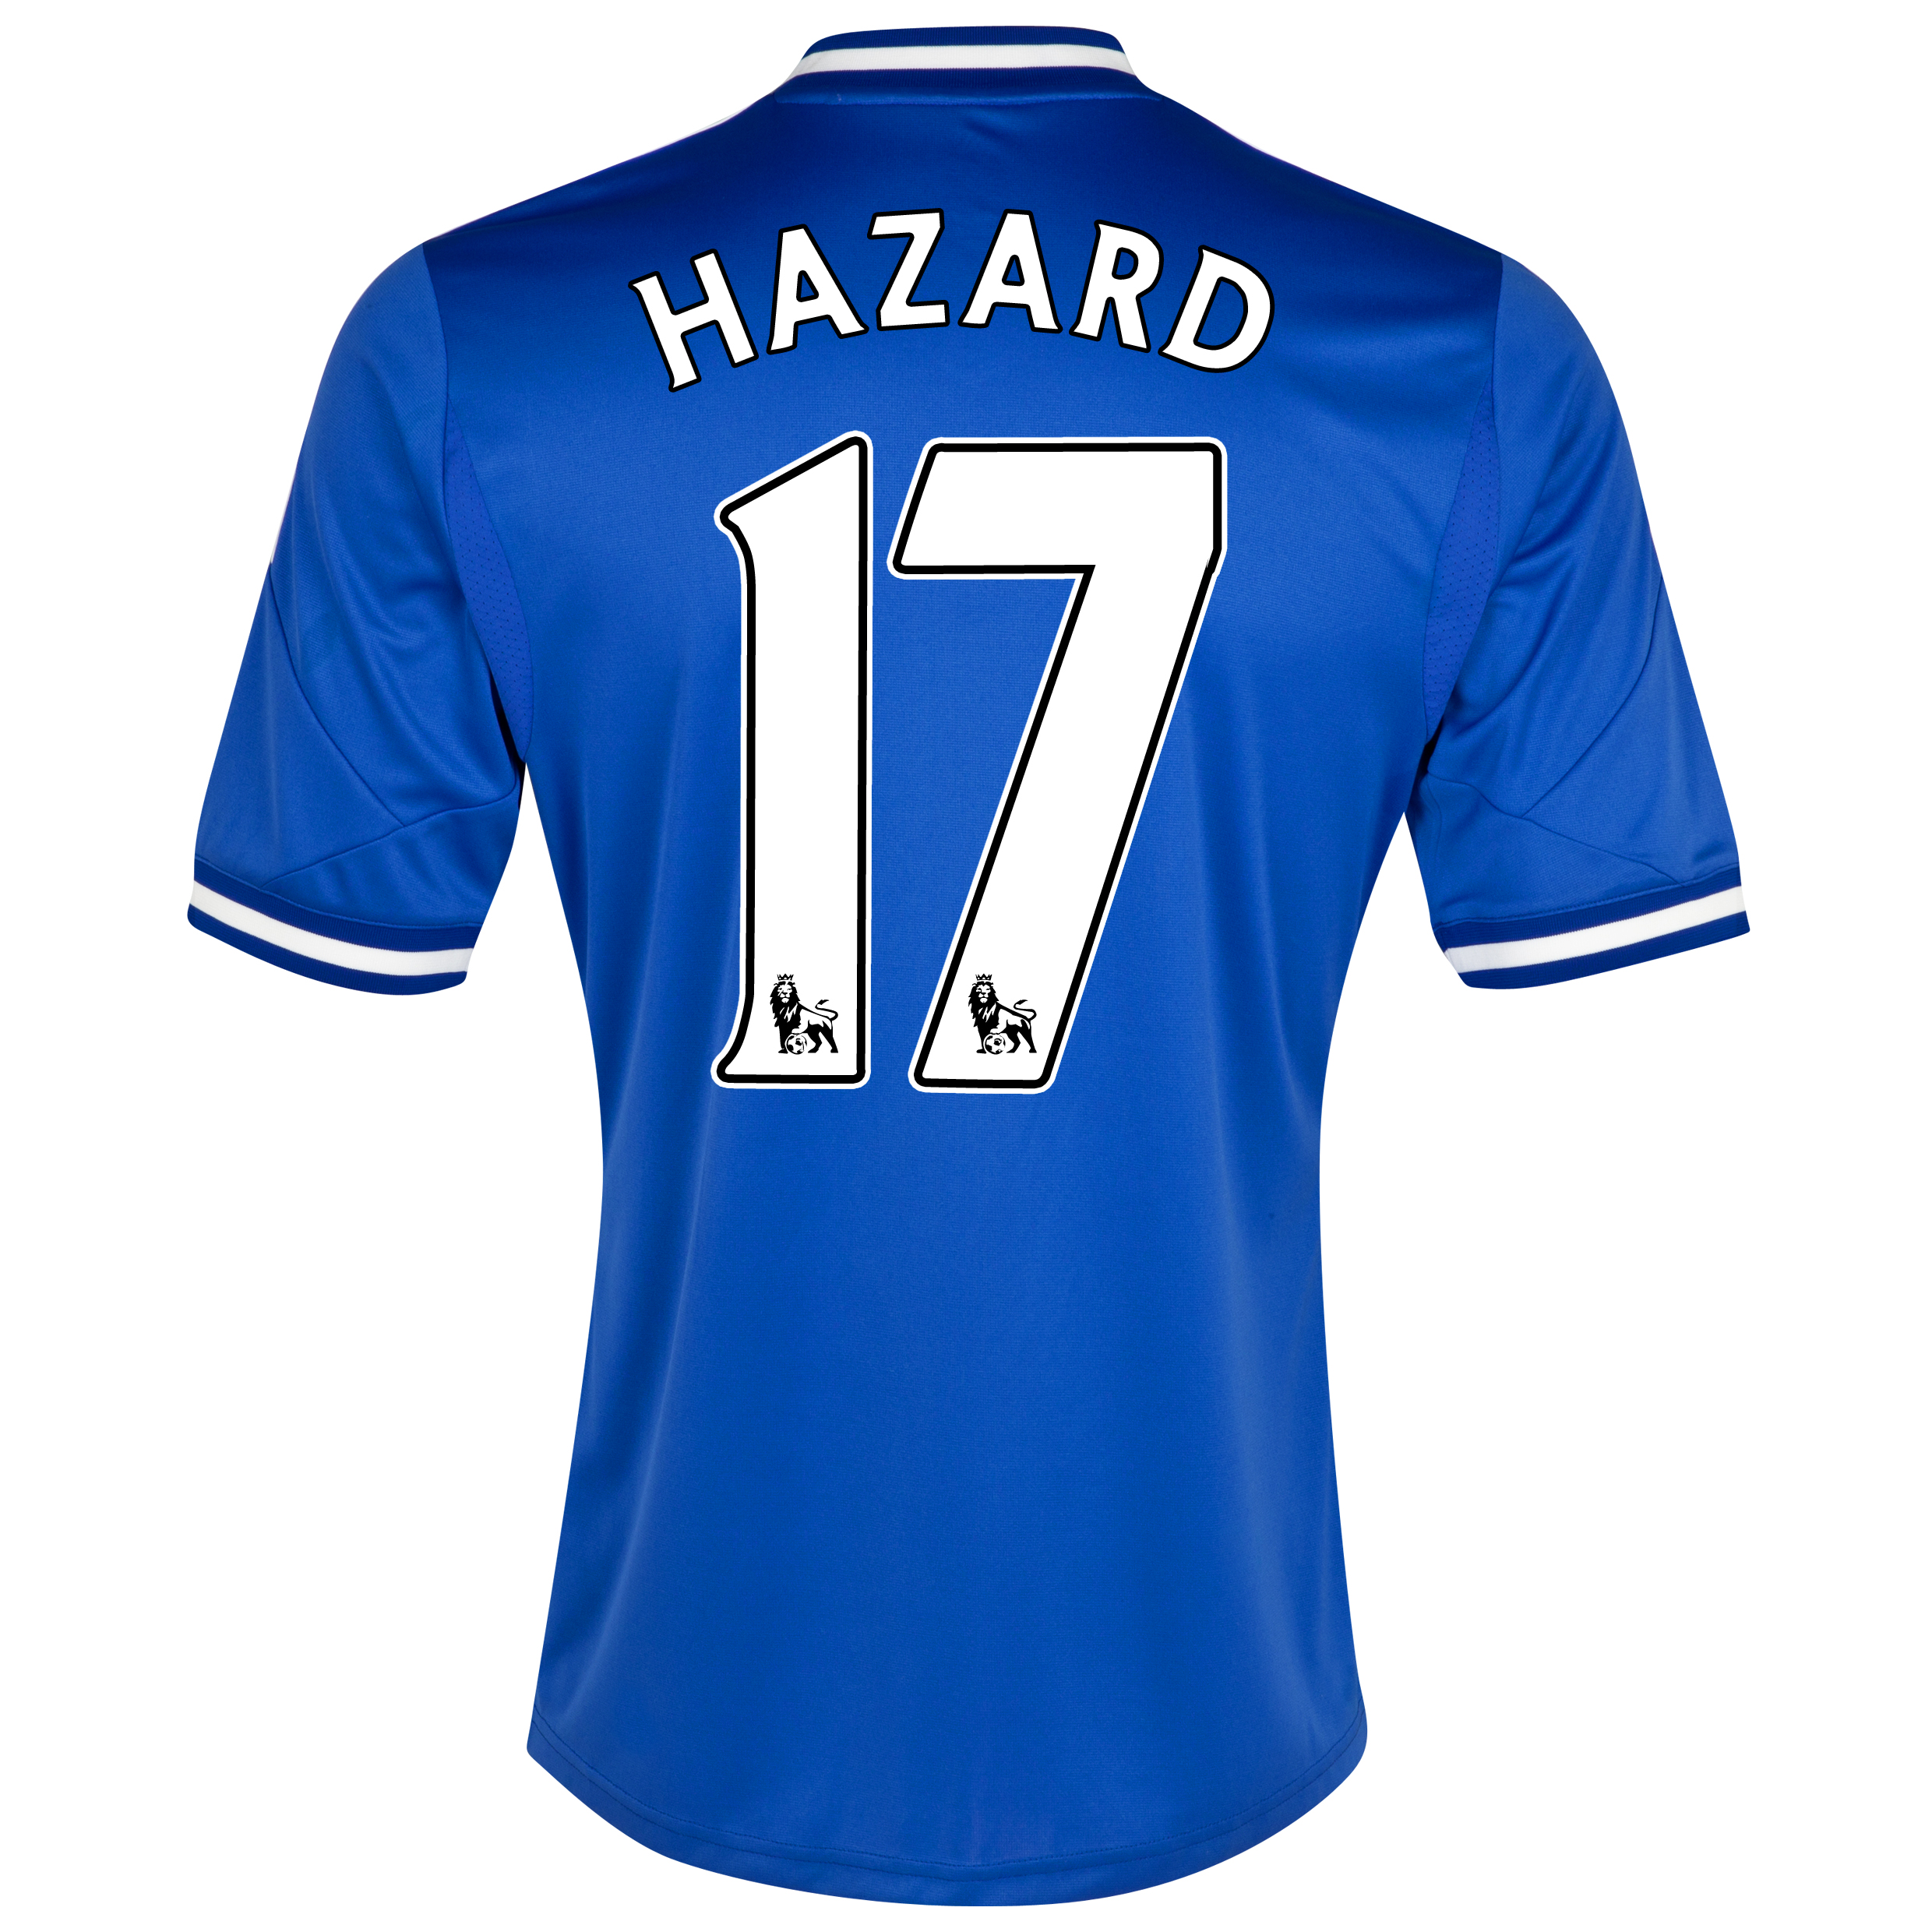 Chelsea Home Shirt 2013/14 - Outsize with Hazard 17 printing